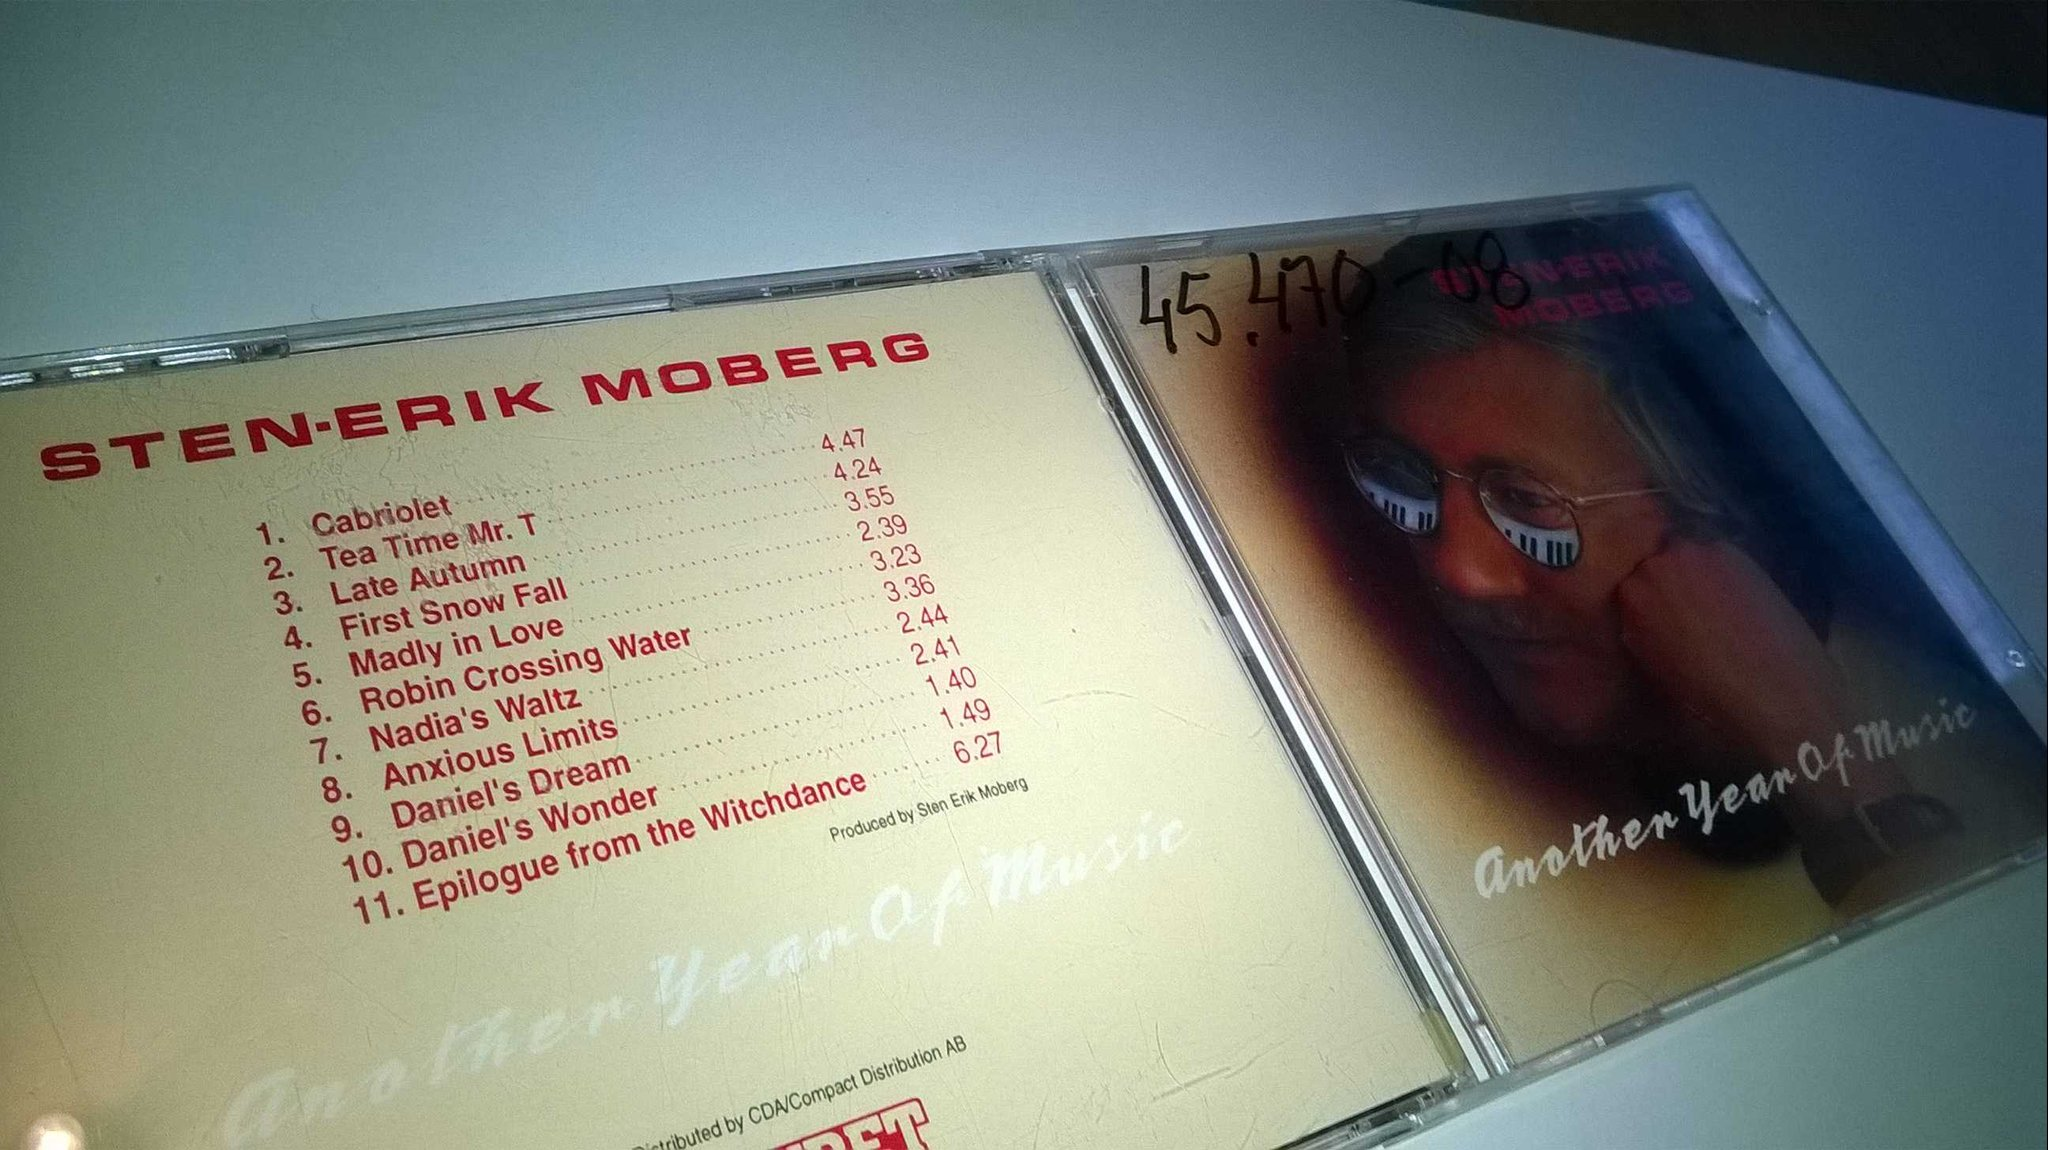 Sten-Erik Moberg - Another year of music, CD, rare!